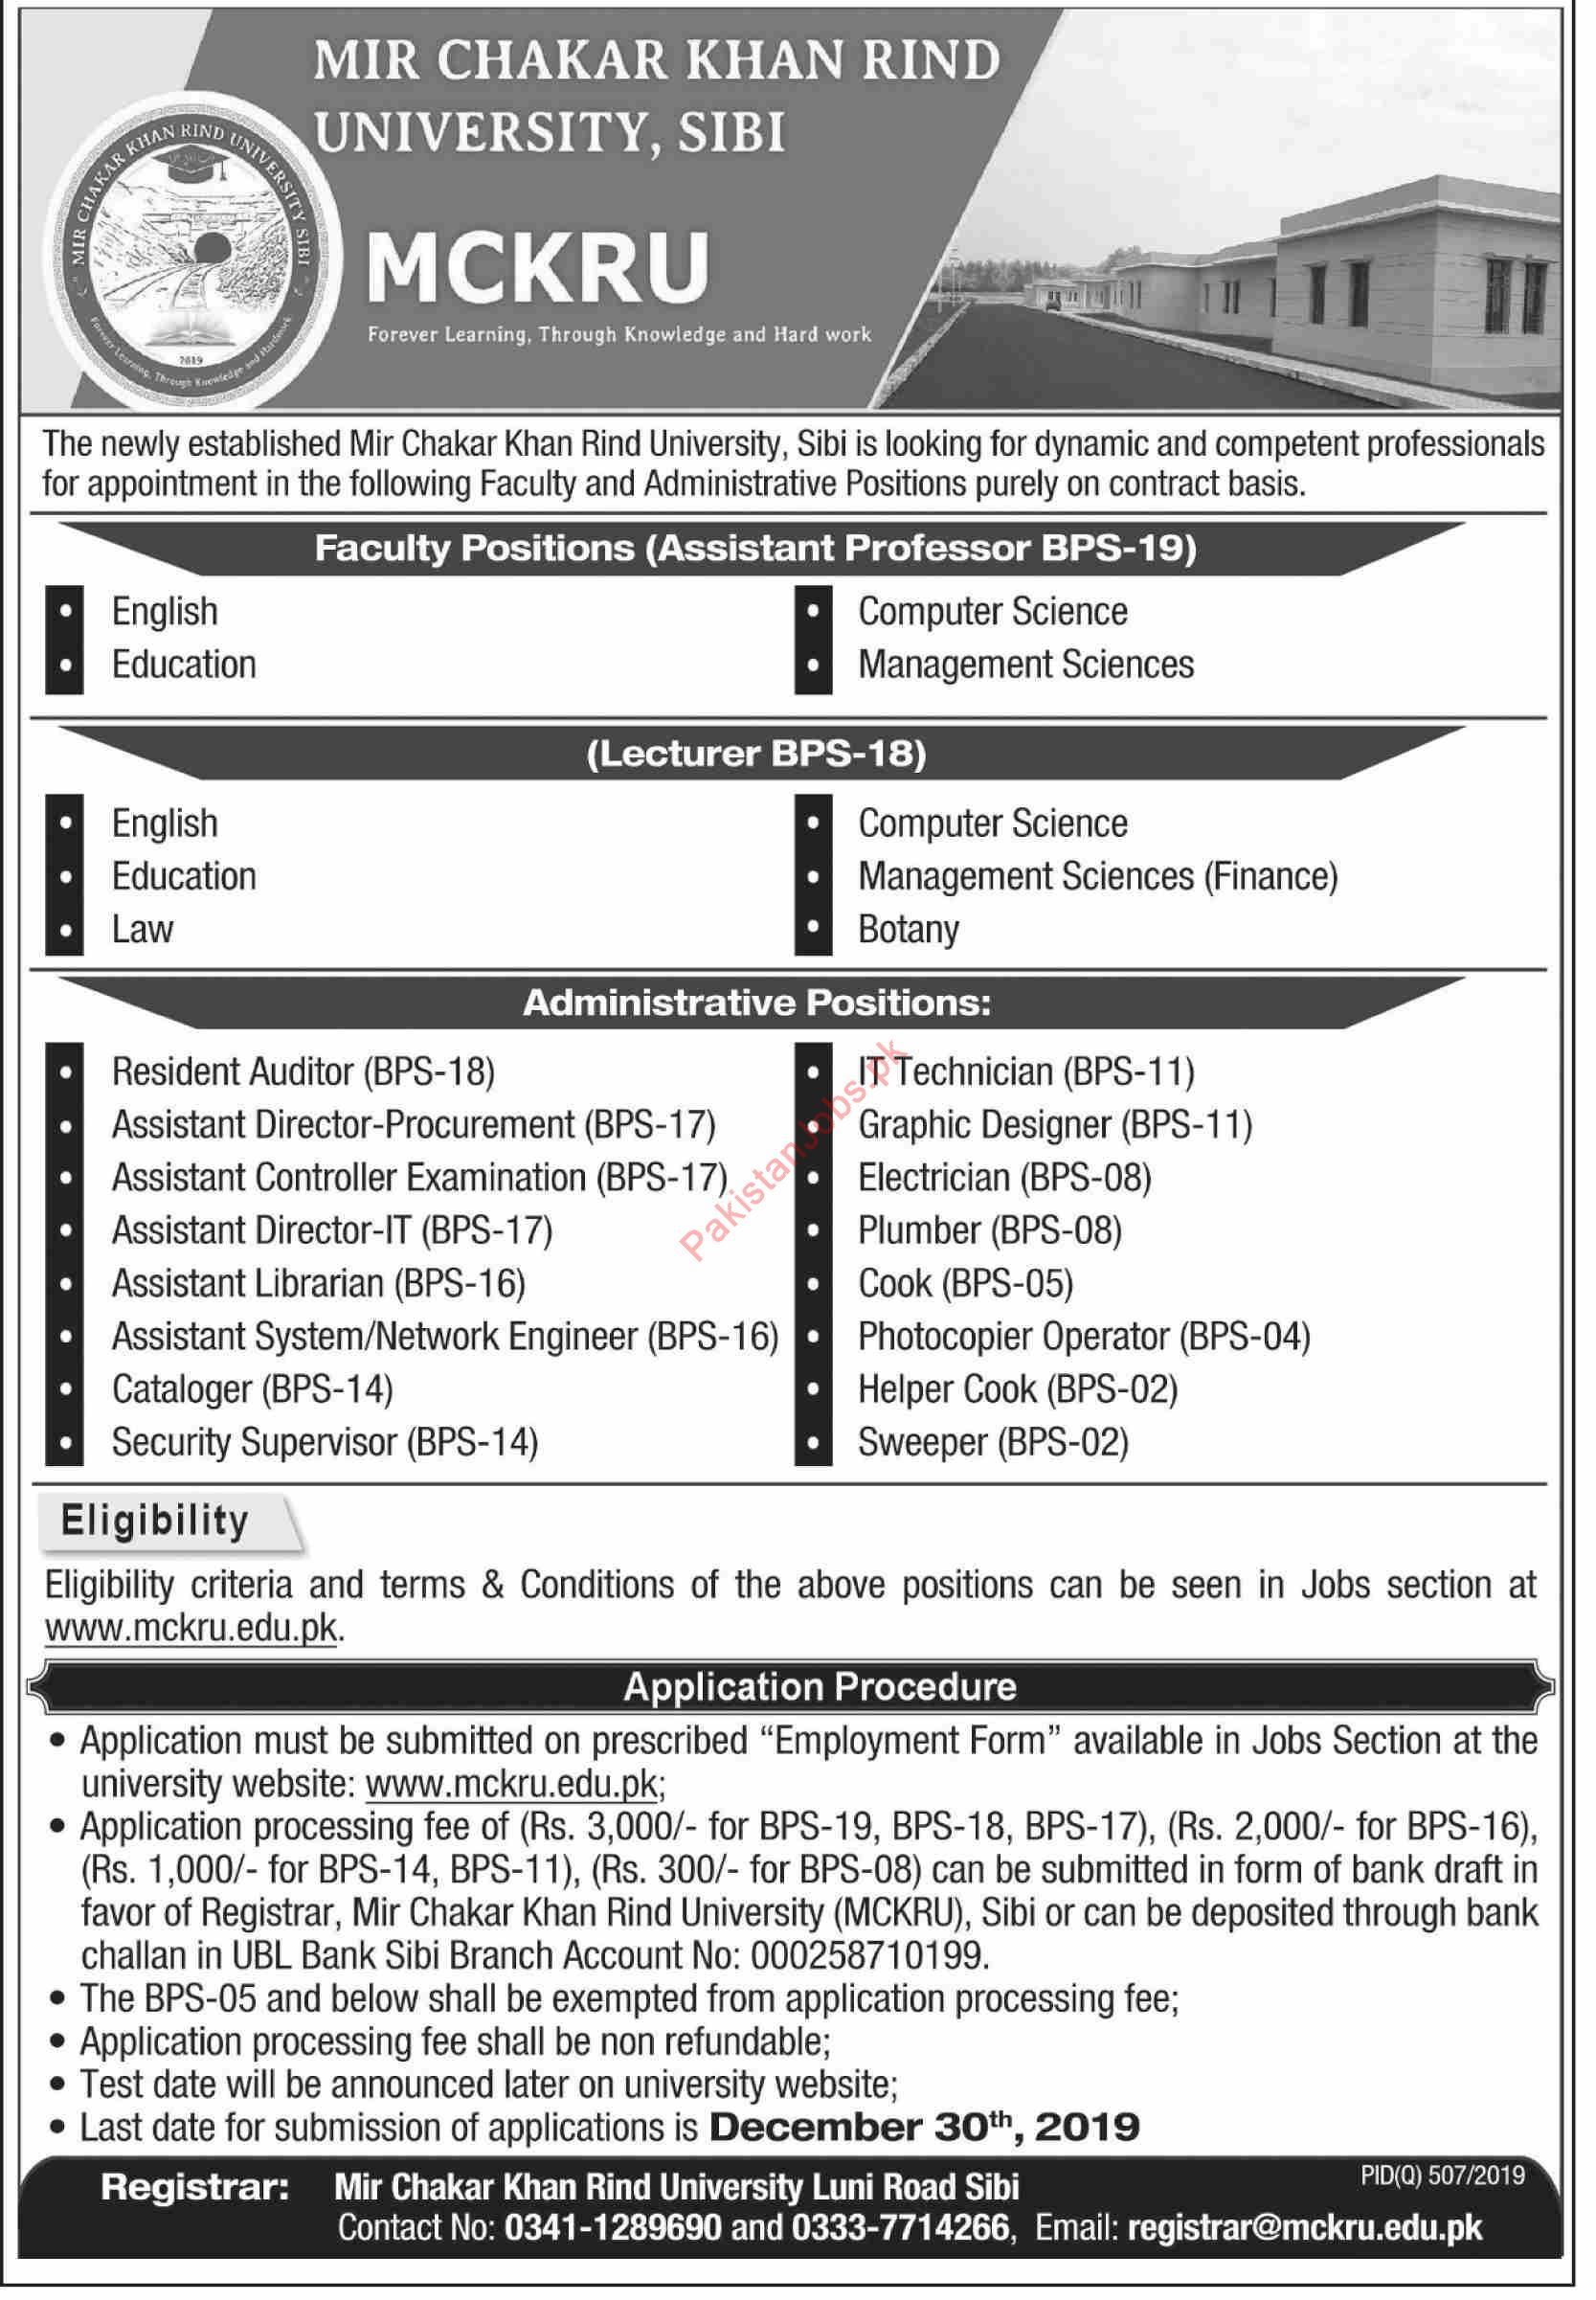 MCKRU University Professor Jobs 2019